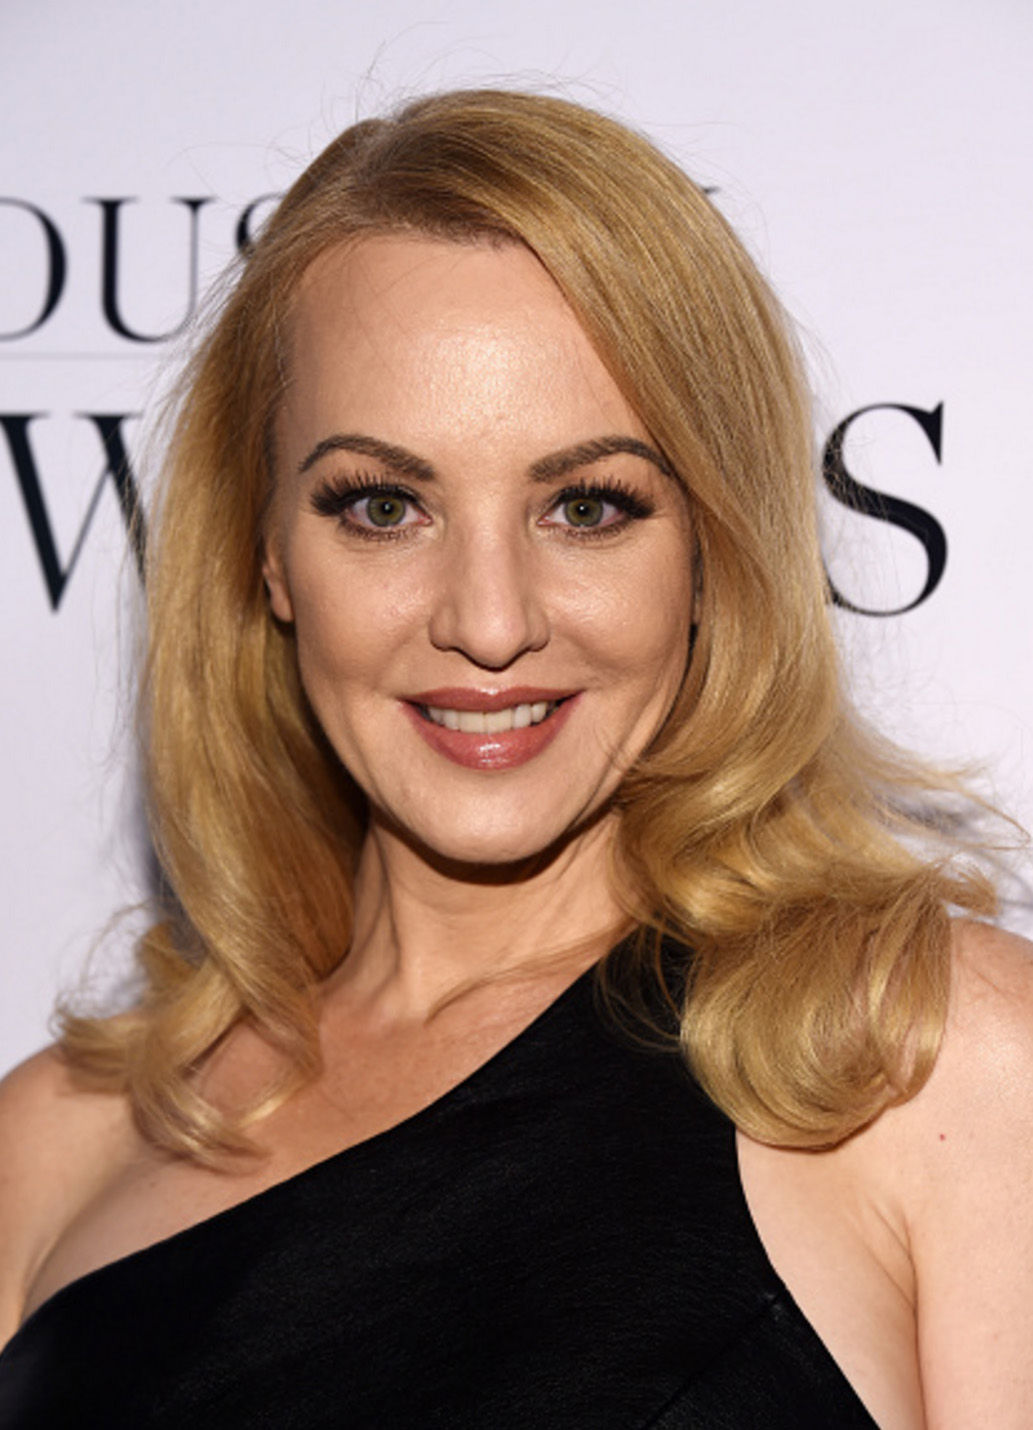 Wendi McLendon-Covey Fansite | Television Industry Advocacy Awards